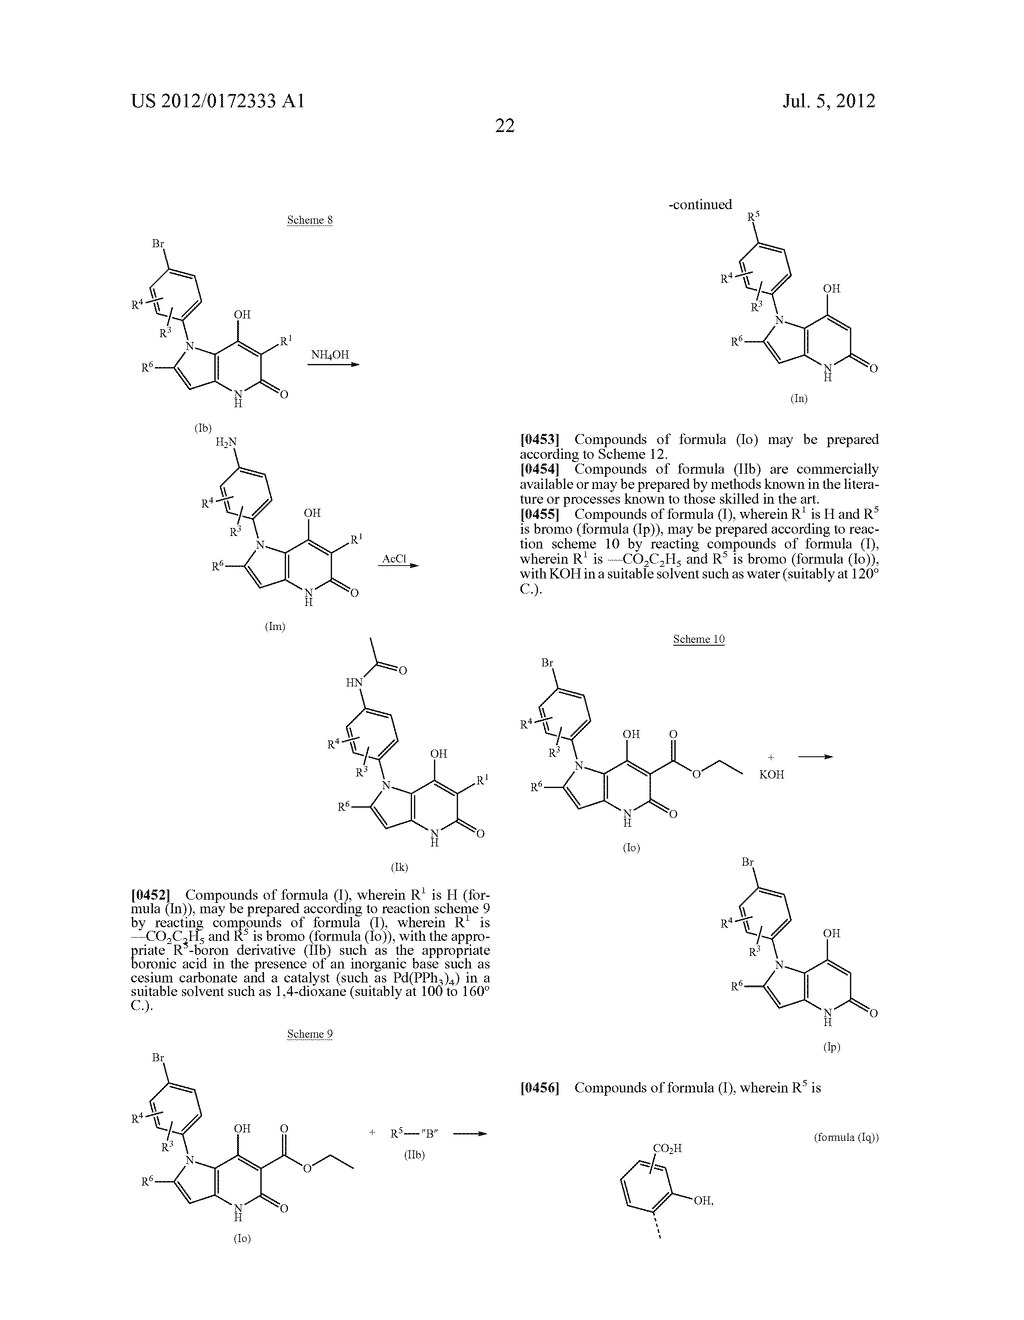 PYRROLO-PYRIDINE DERIVATIVES AS ACTIVATORS OF AMPK - diagram, schematic, and image 23